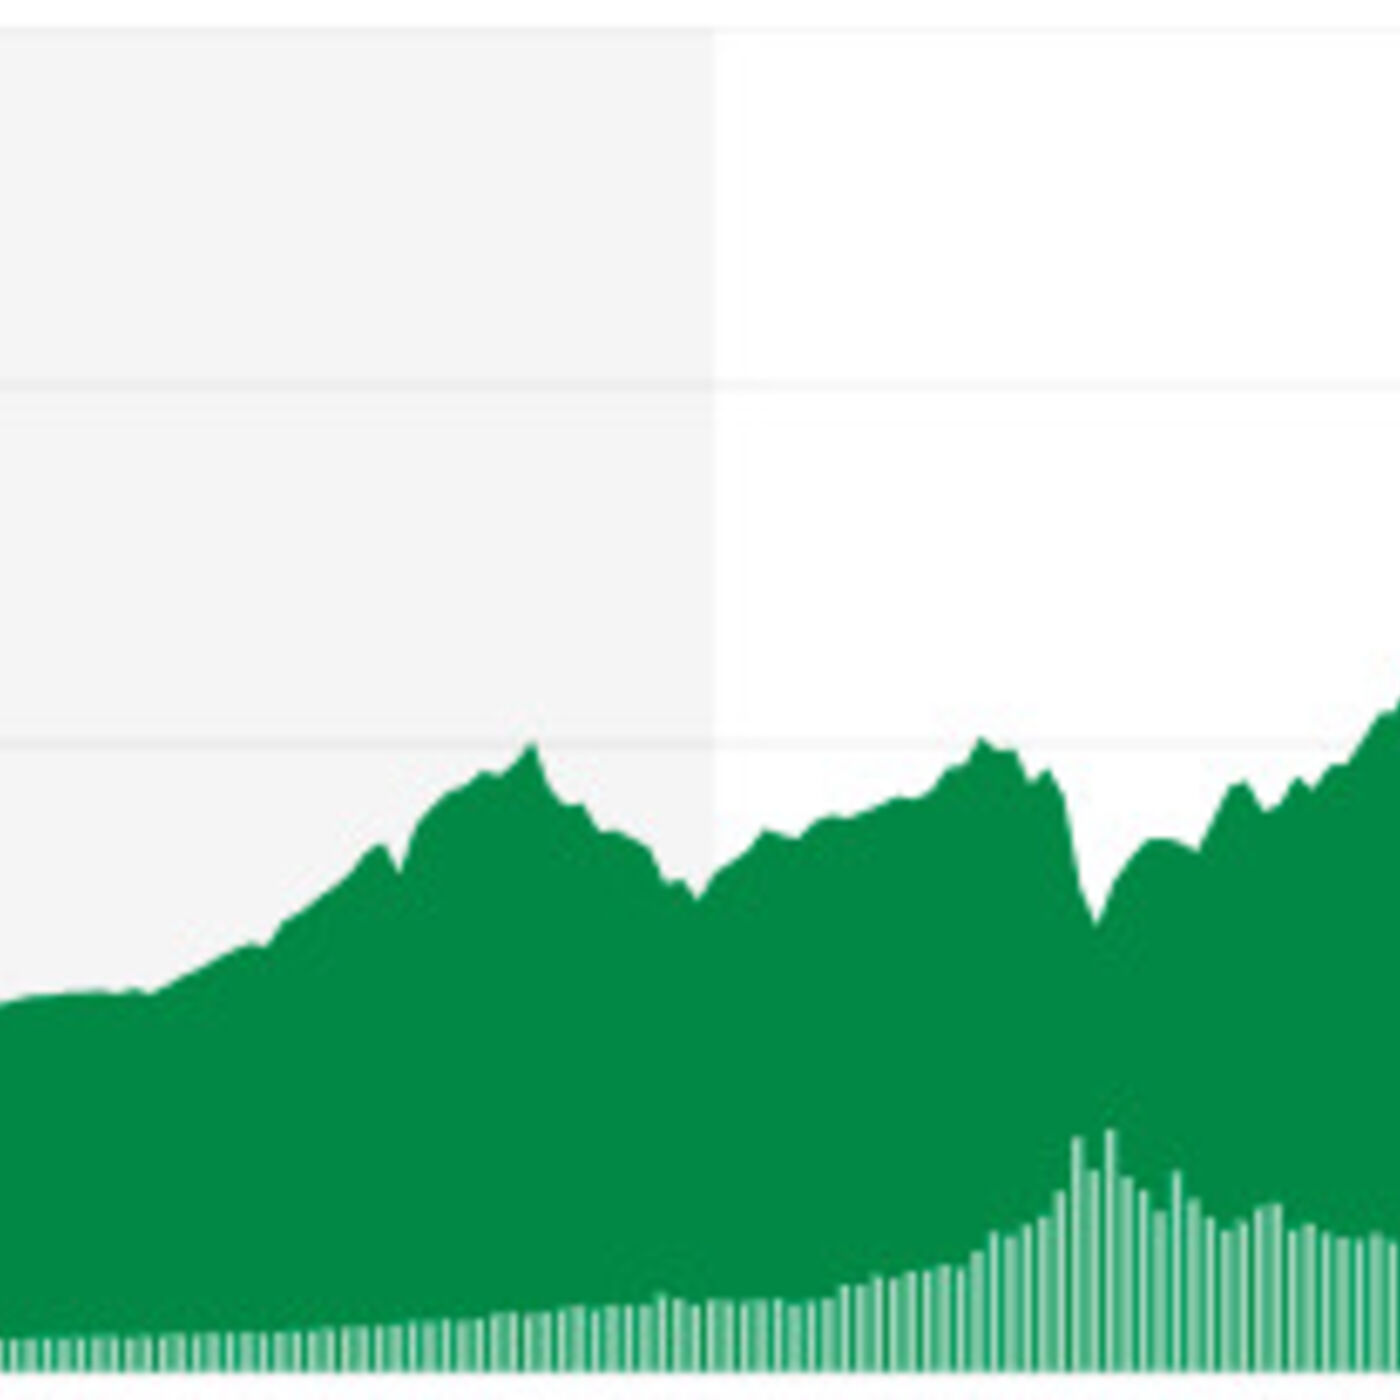 #61. The market's at an all-time high (again!). Now what?